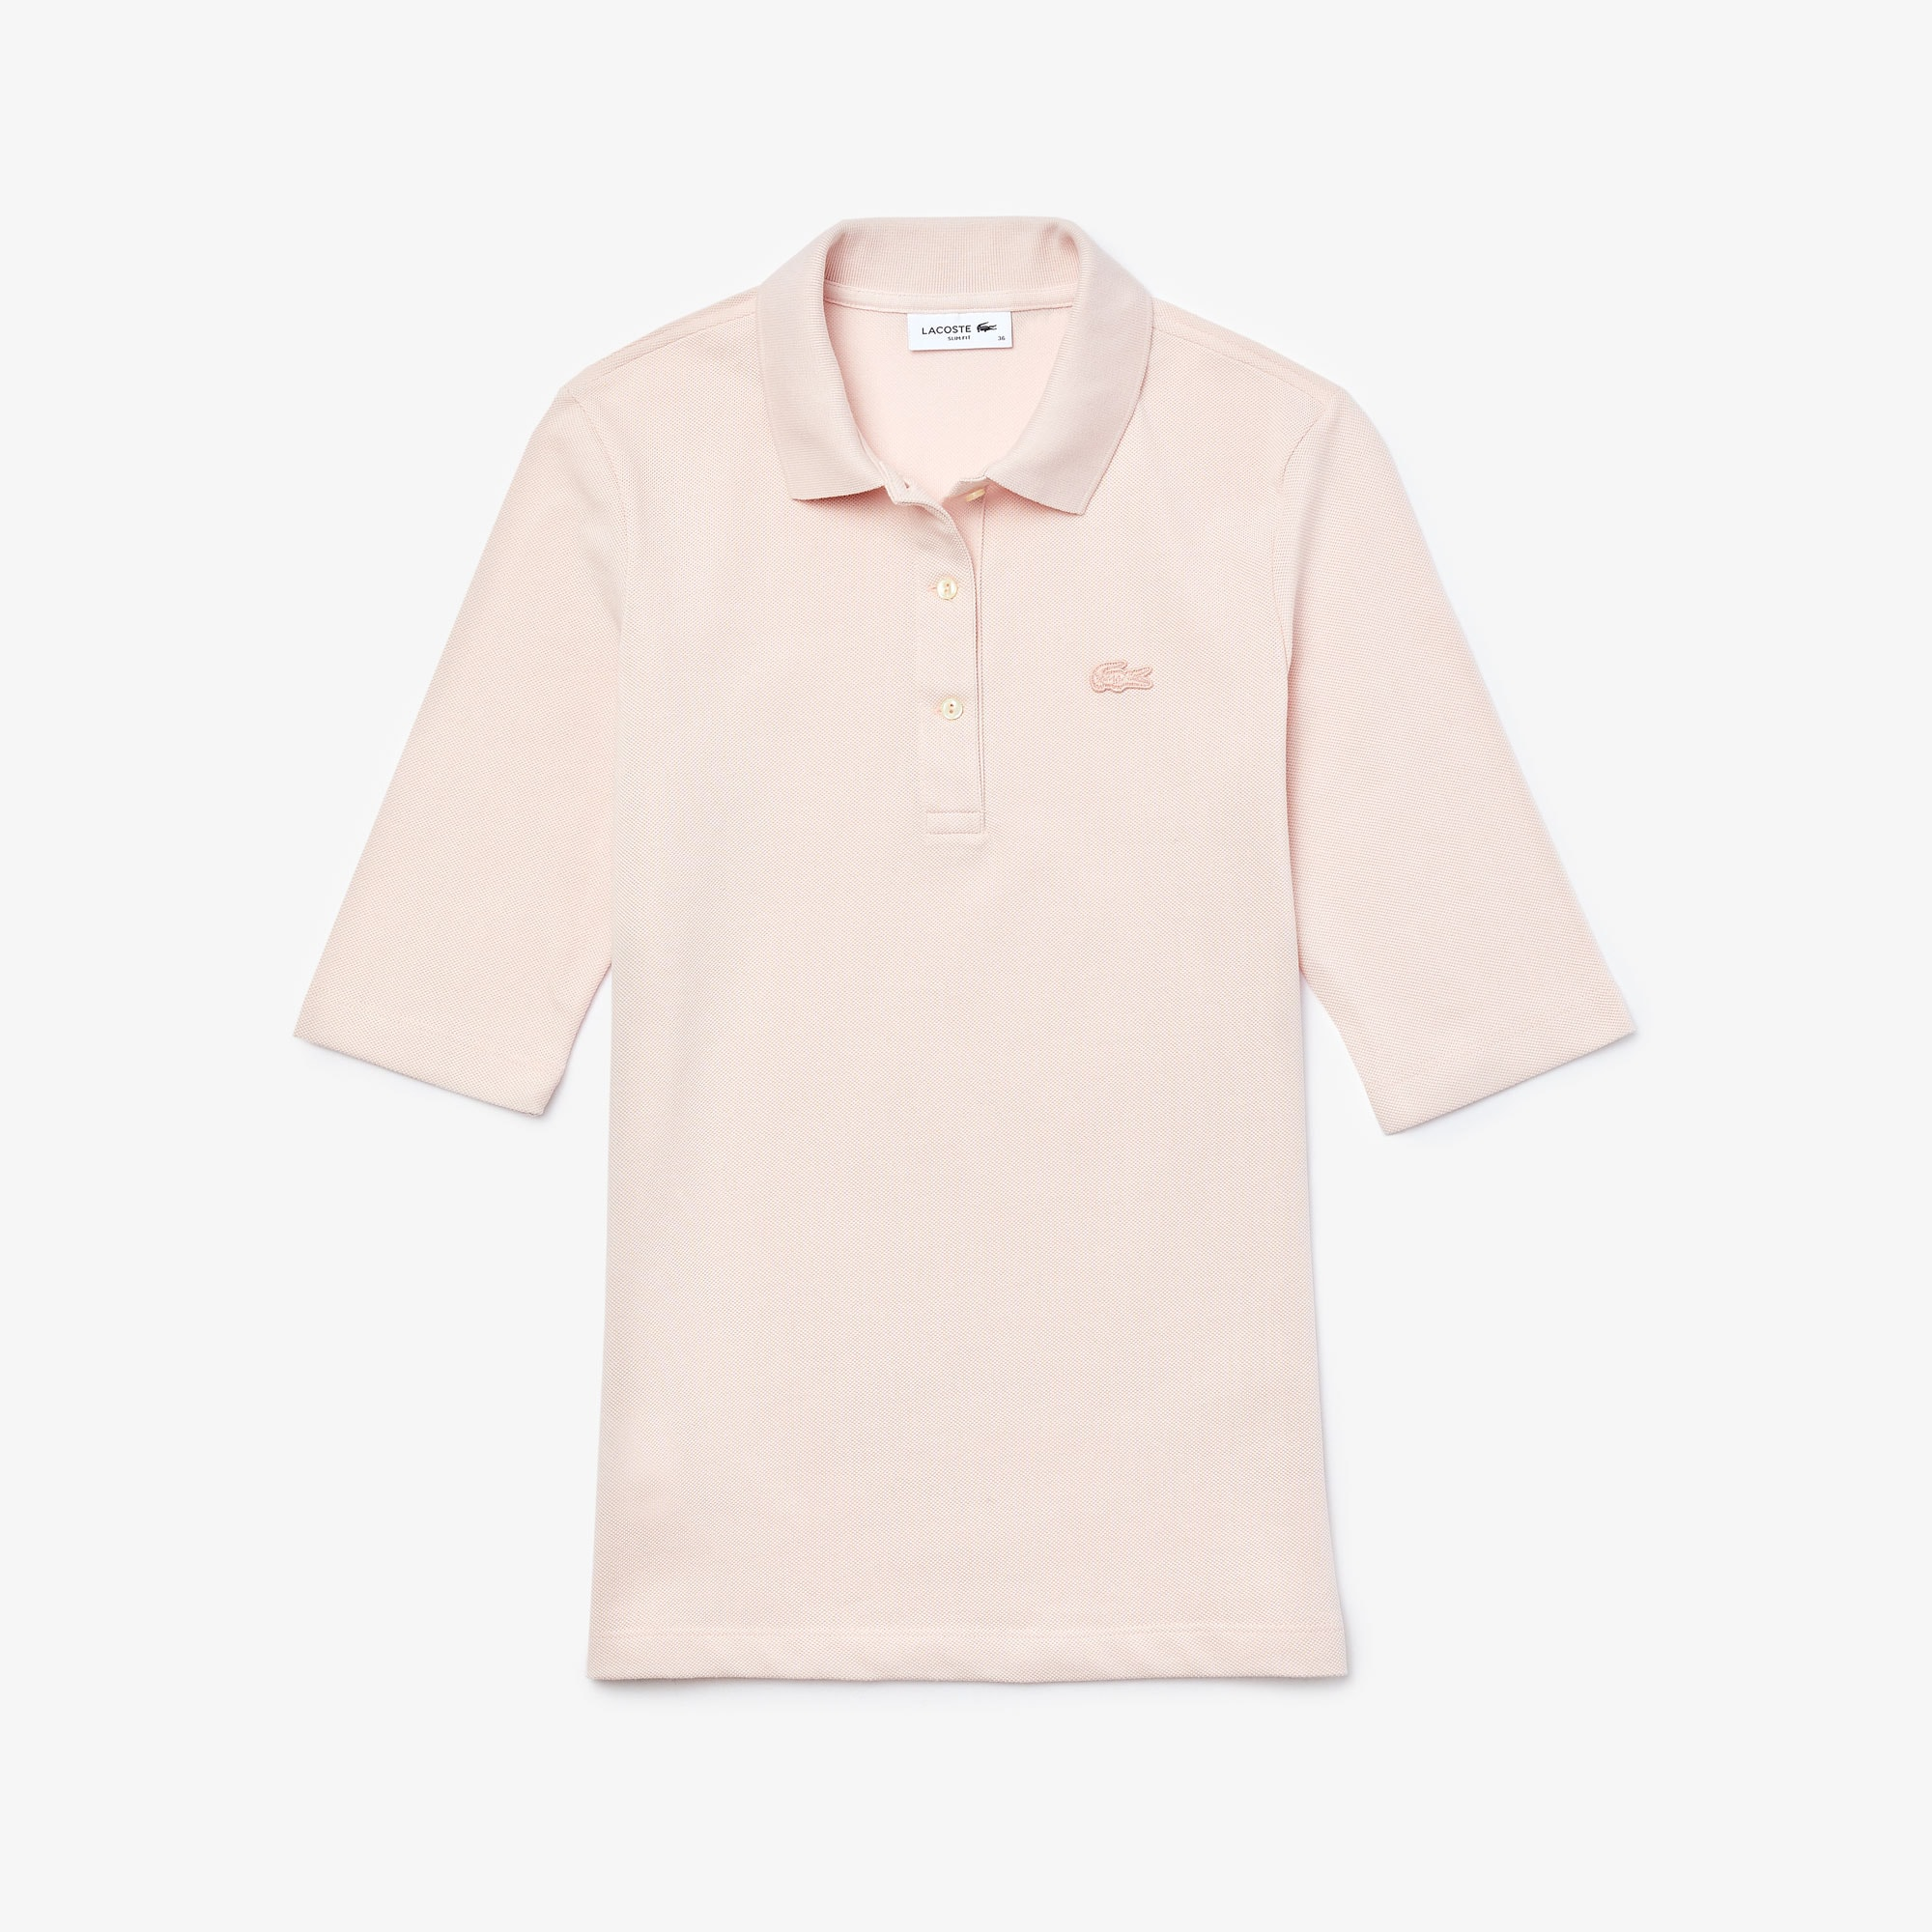 Women's Lacoste Classic Fit Supple Cotton Polo Shirt